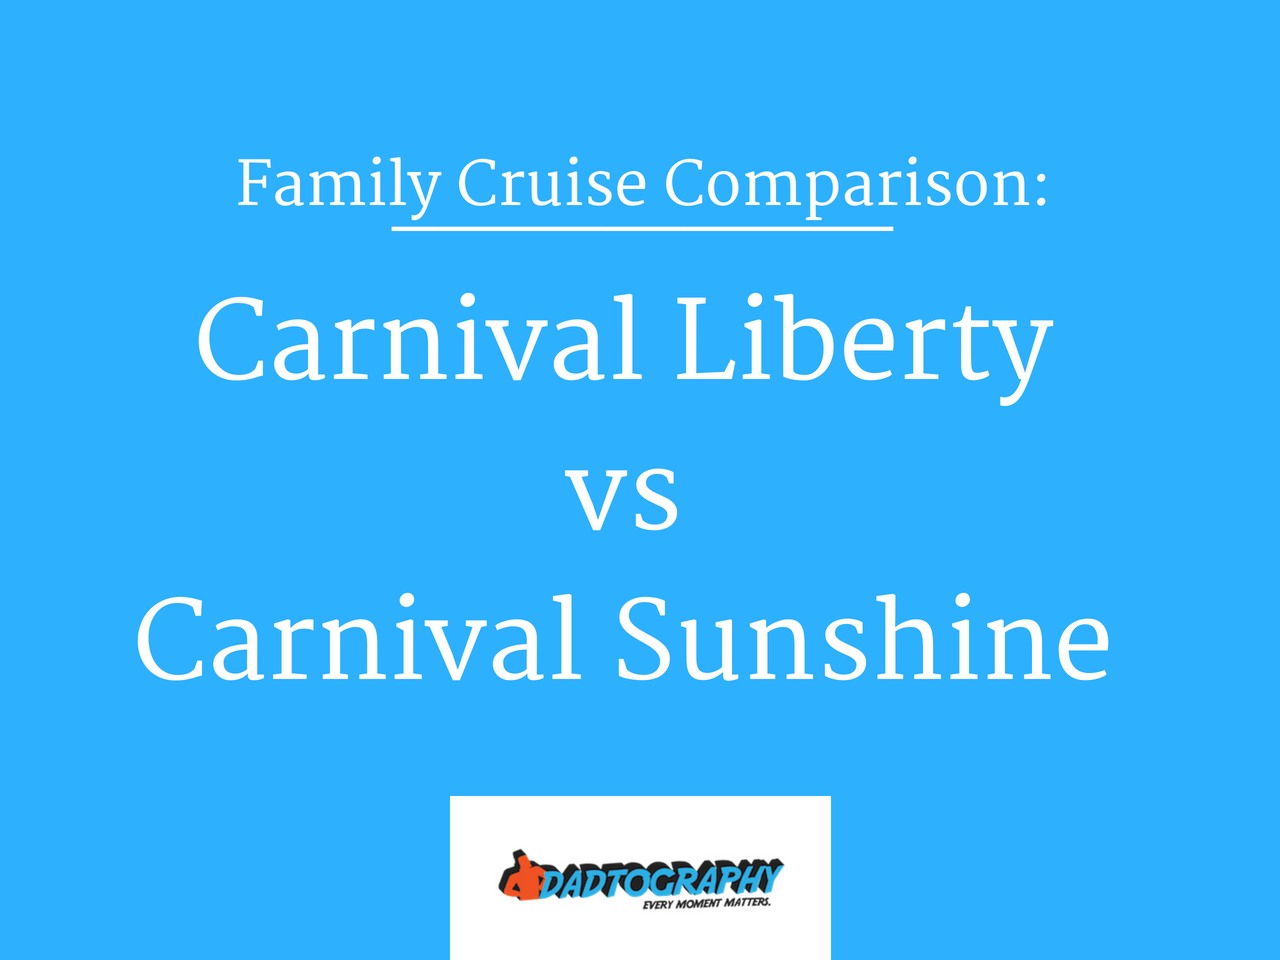 Carnival Liberty vs Carnival Sunshine